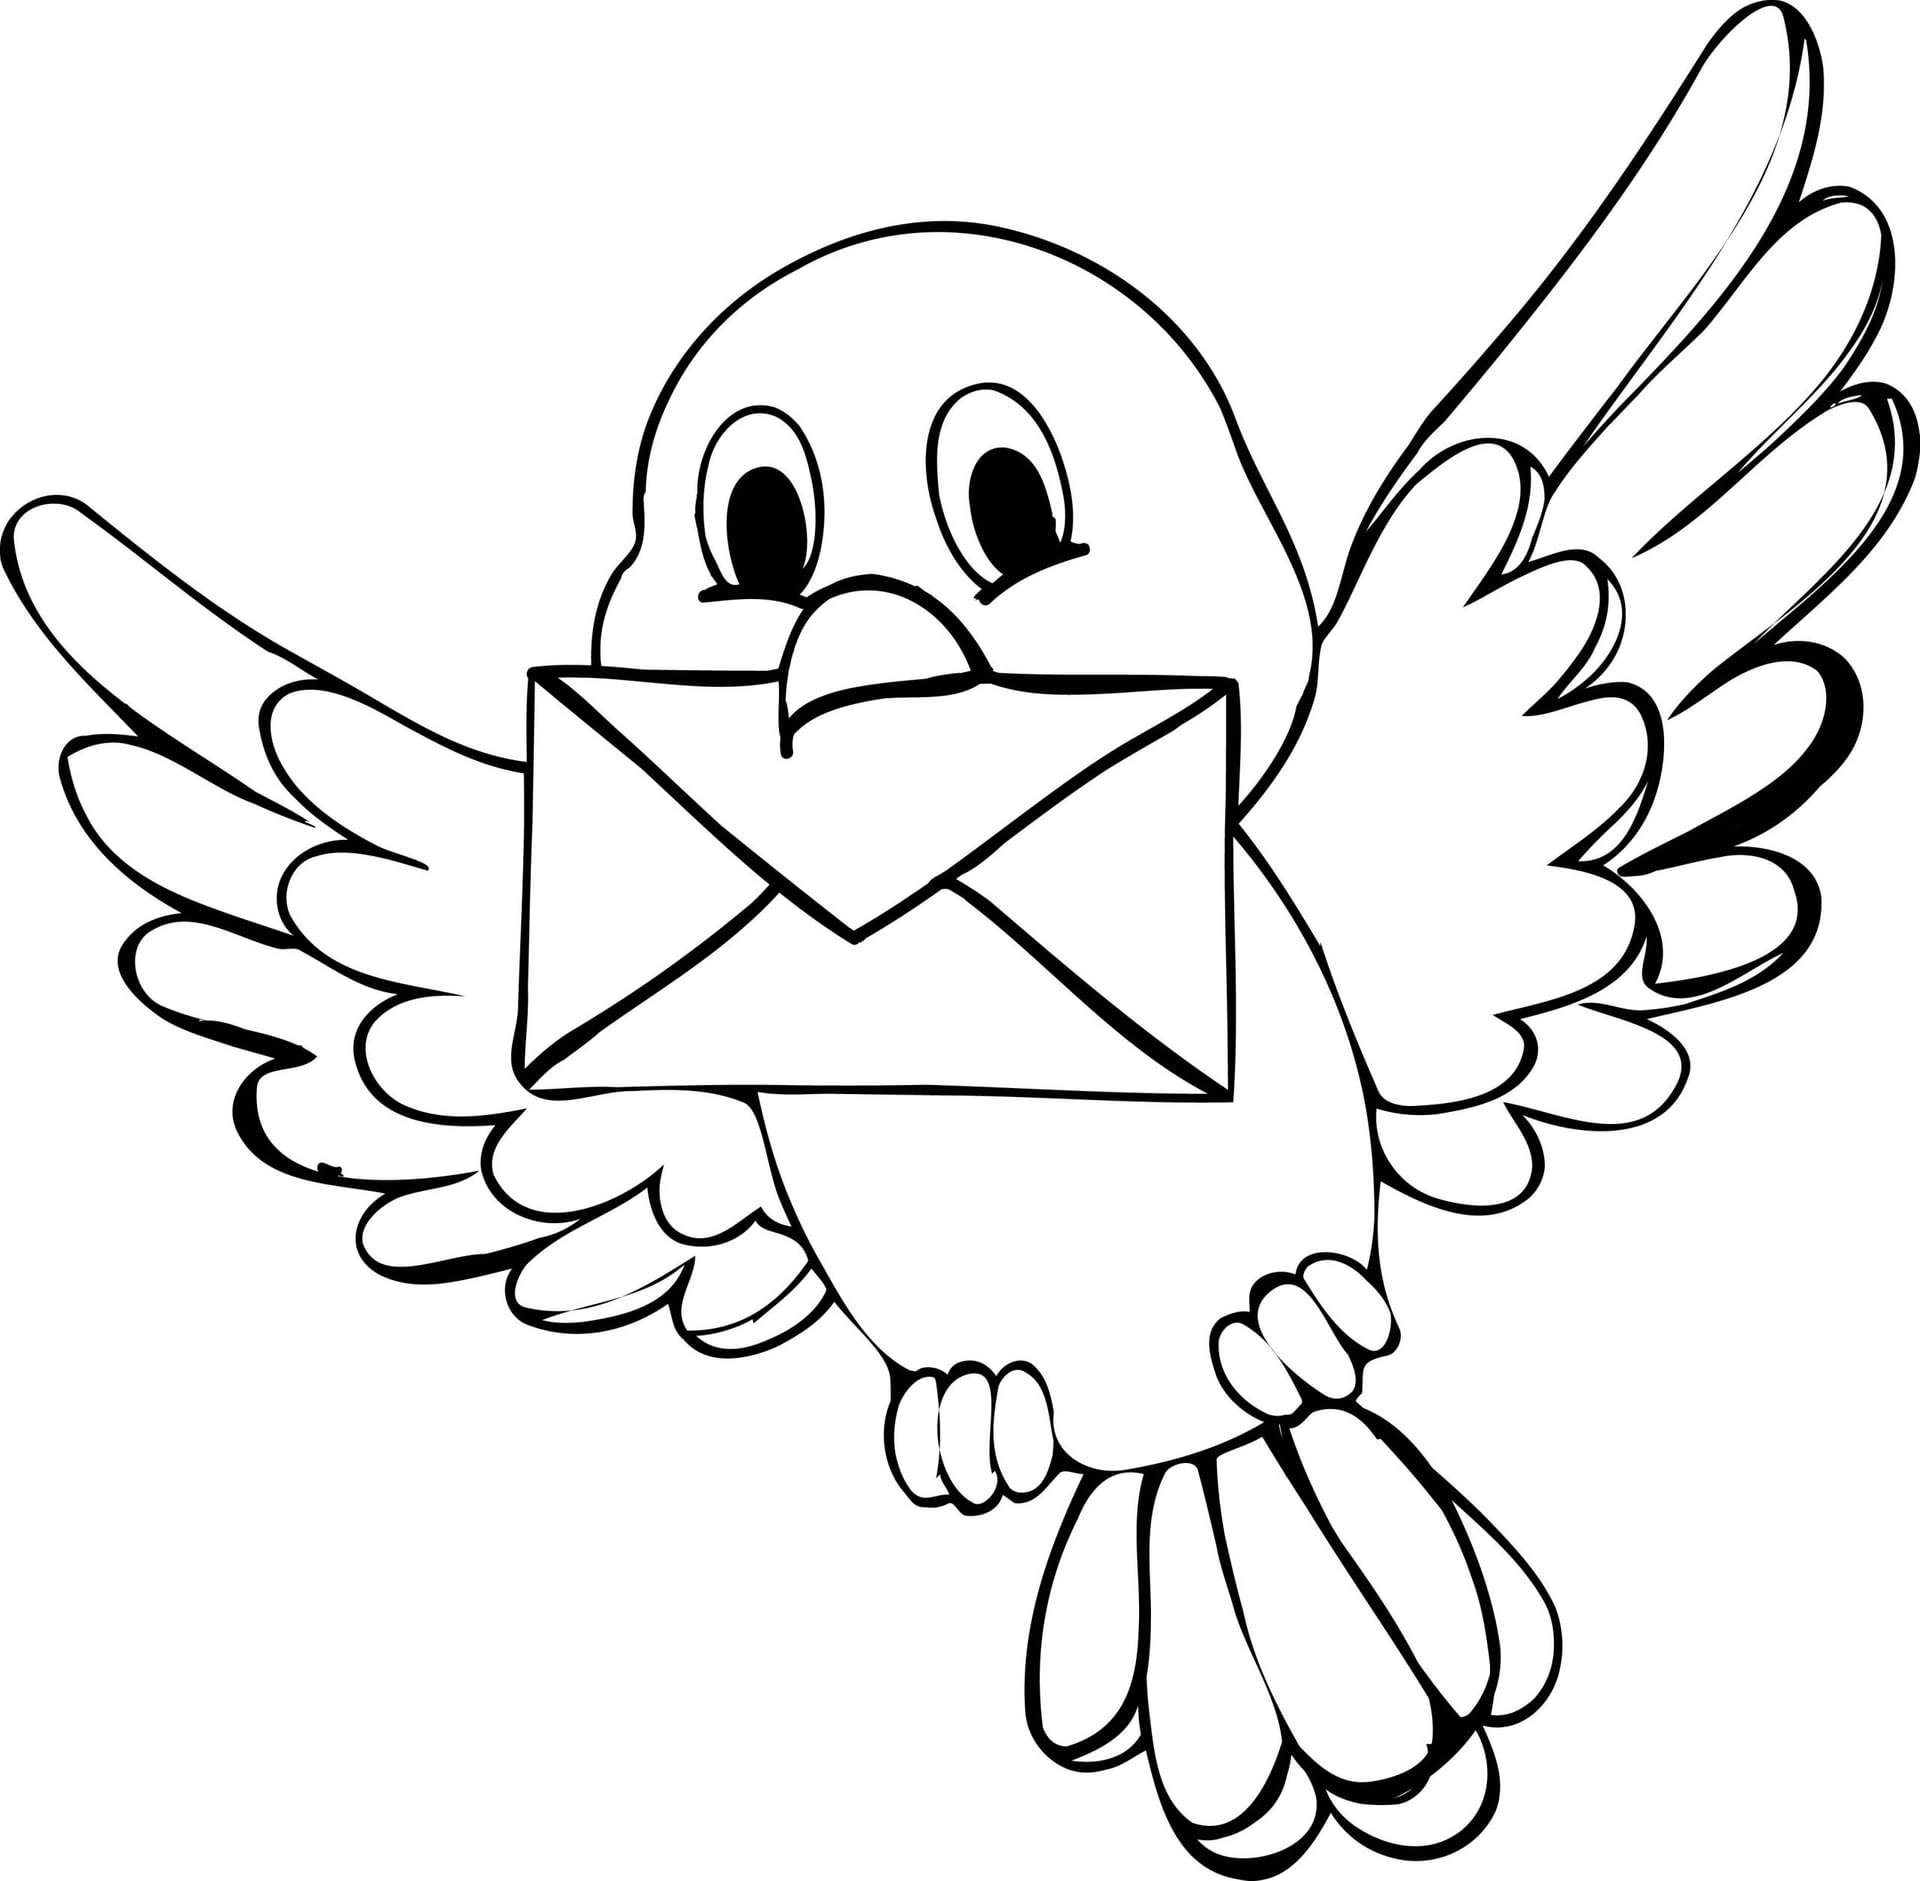 coloring bird for kids peacock coloring pages for kids for coloring kids bird